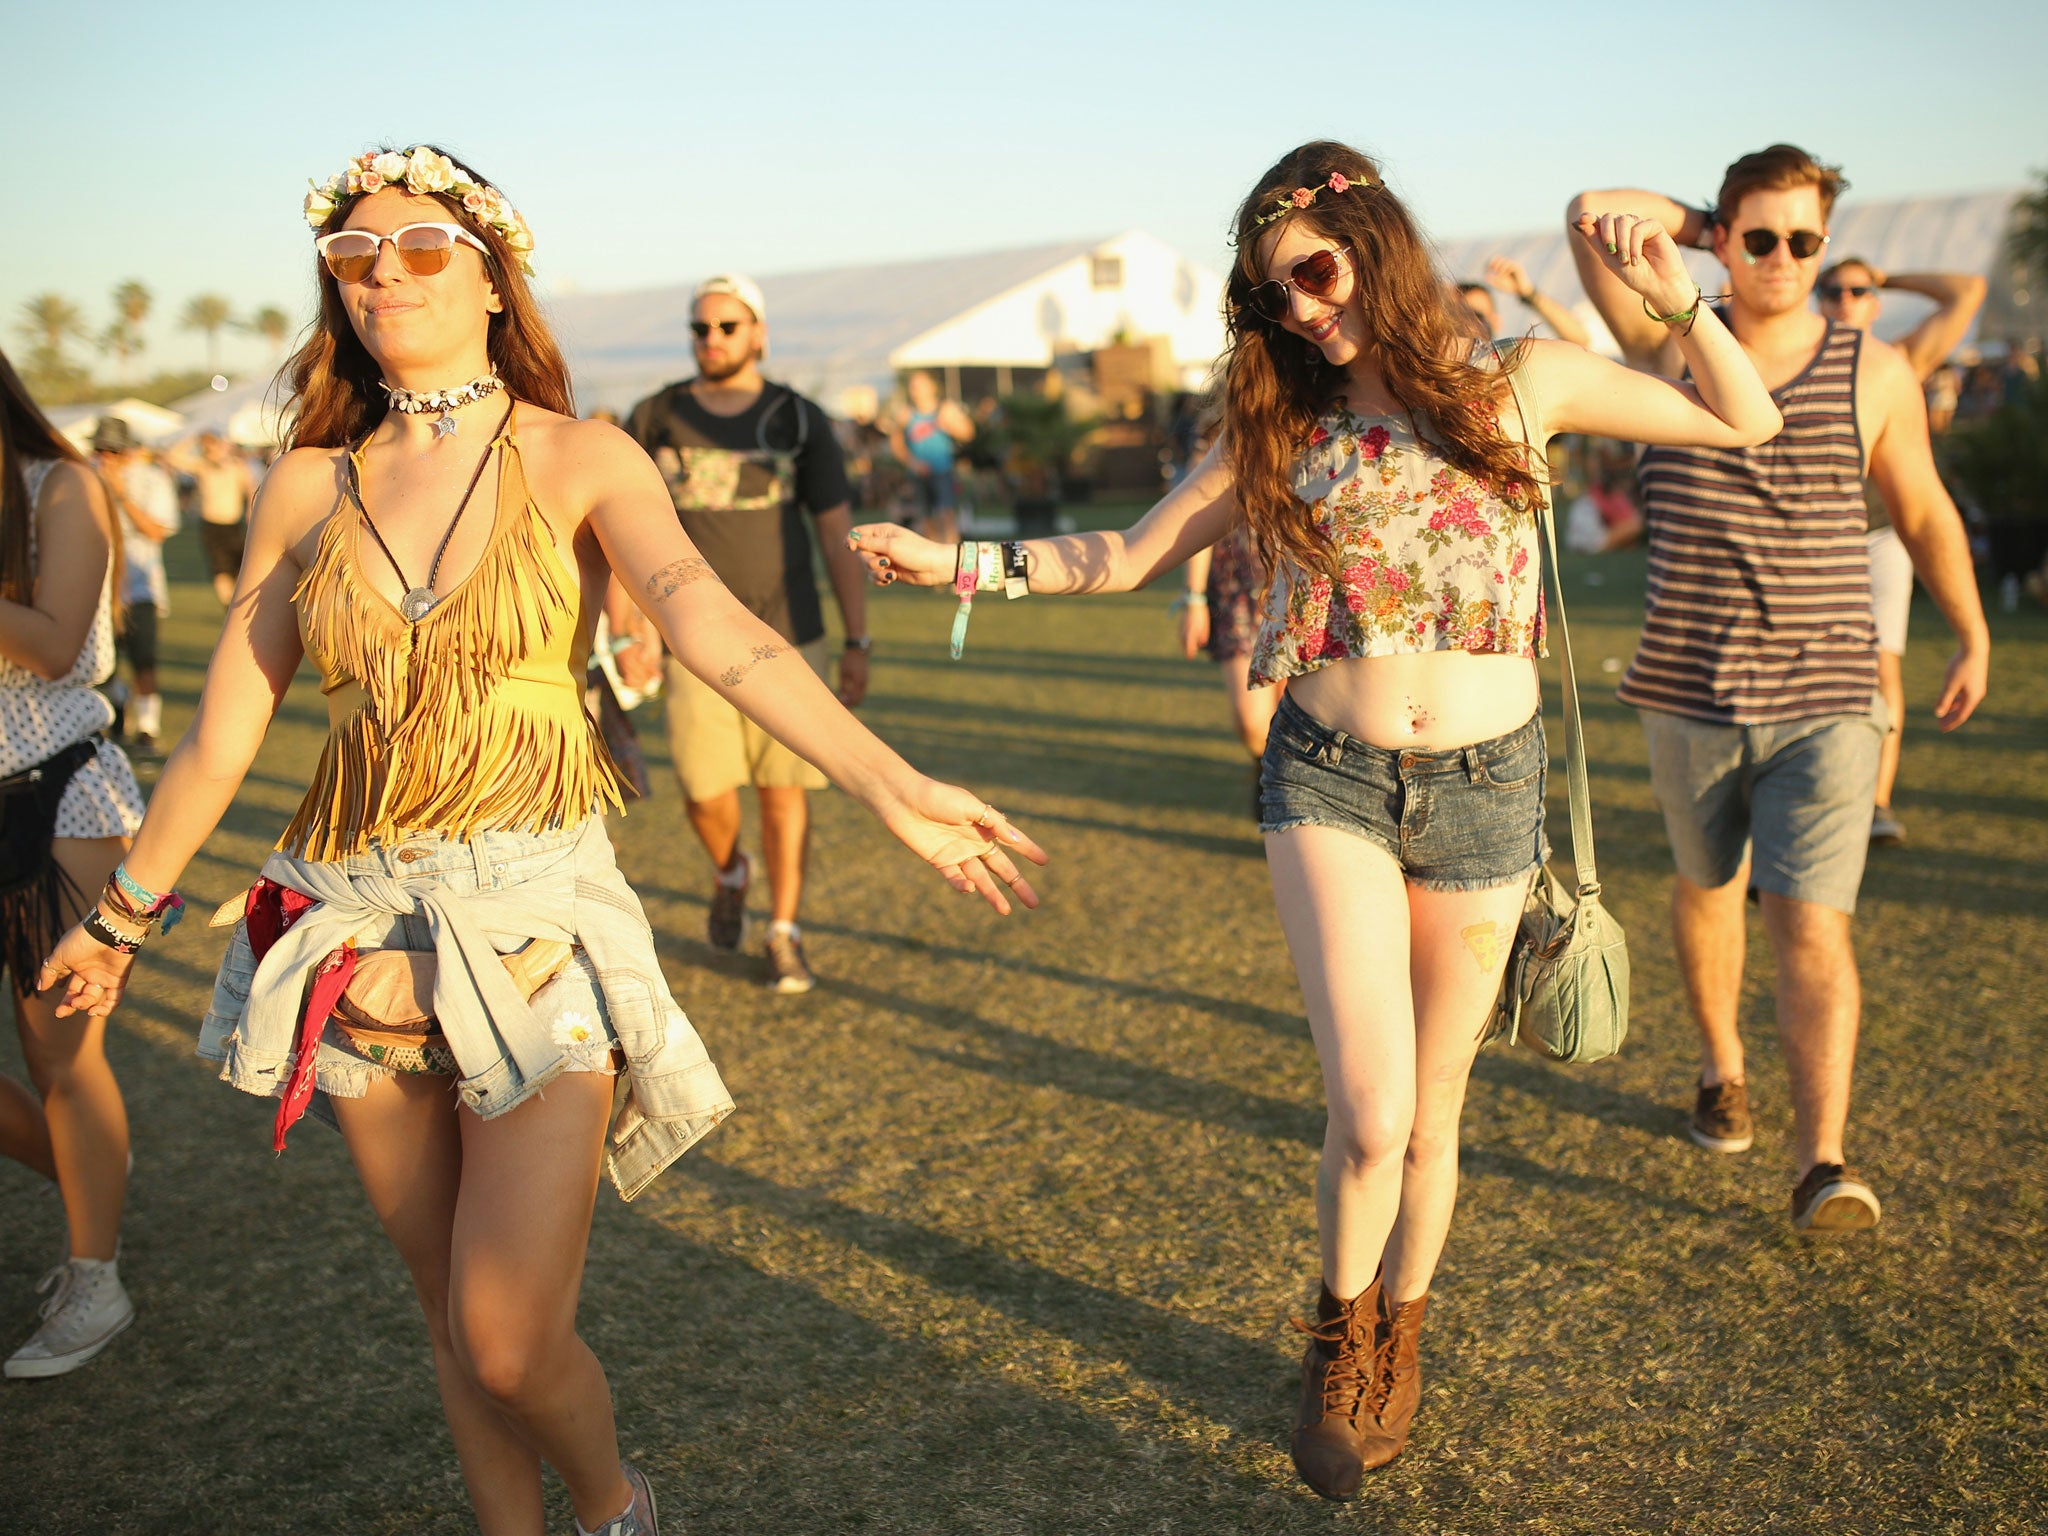 Coachella 2016 review: Why the much-maligned desert festival